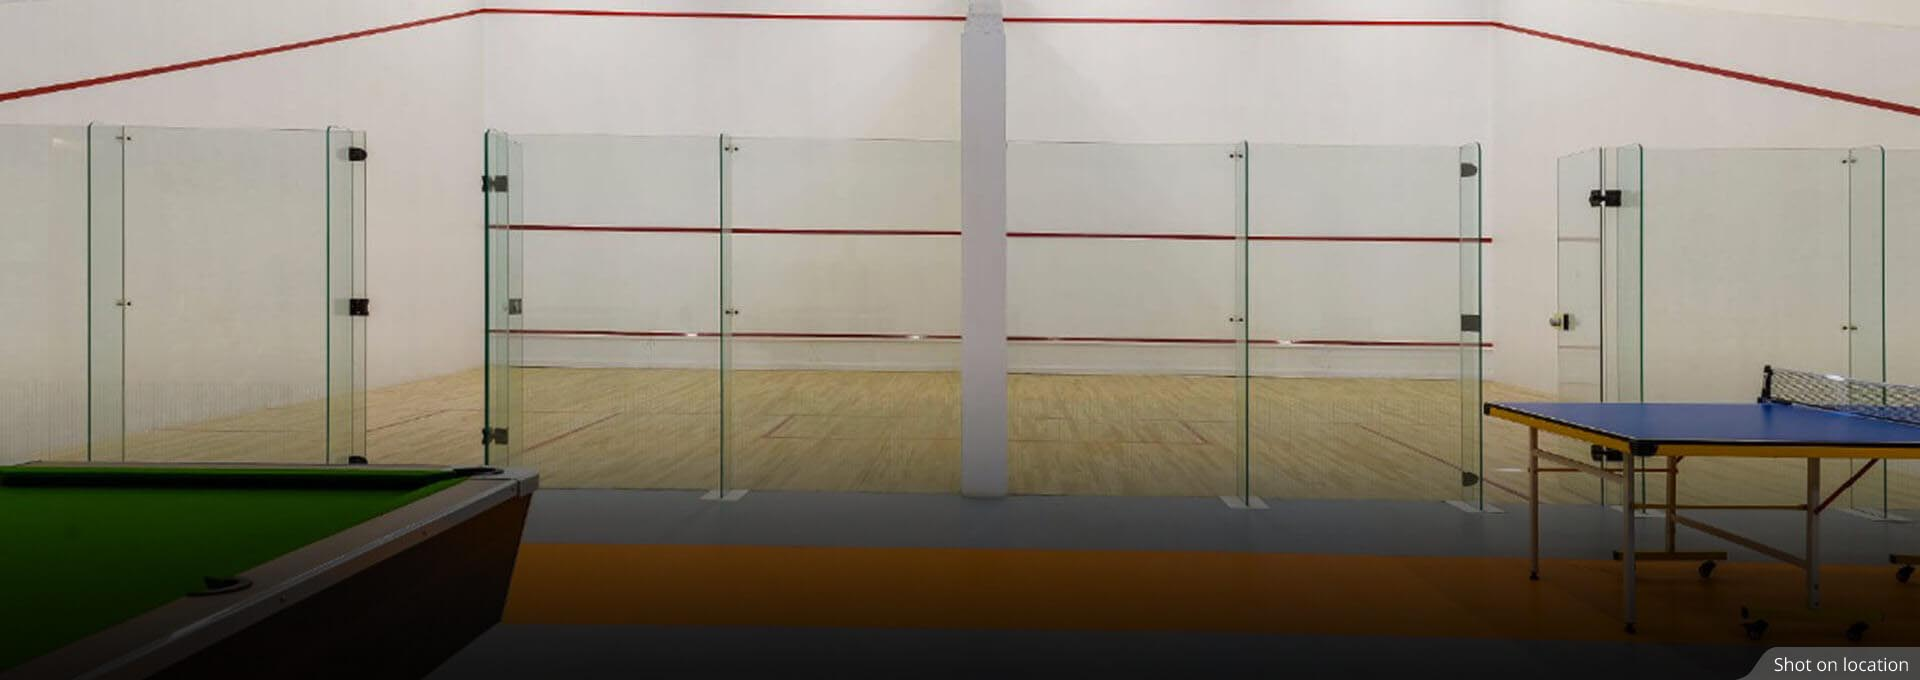 Squash in Club Medows by House of Hirandani in Bannerghatta, Bengaluru